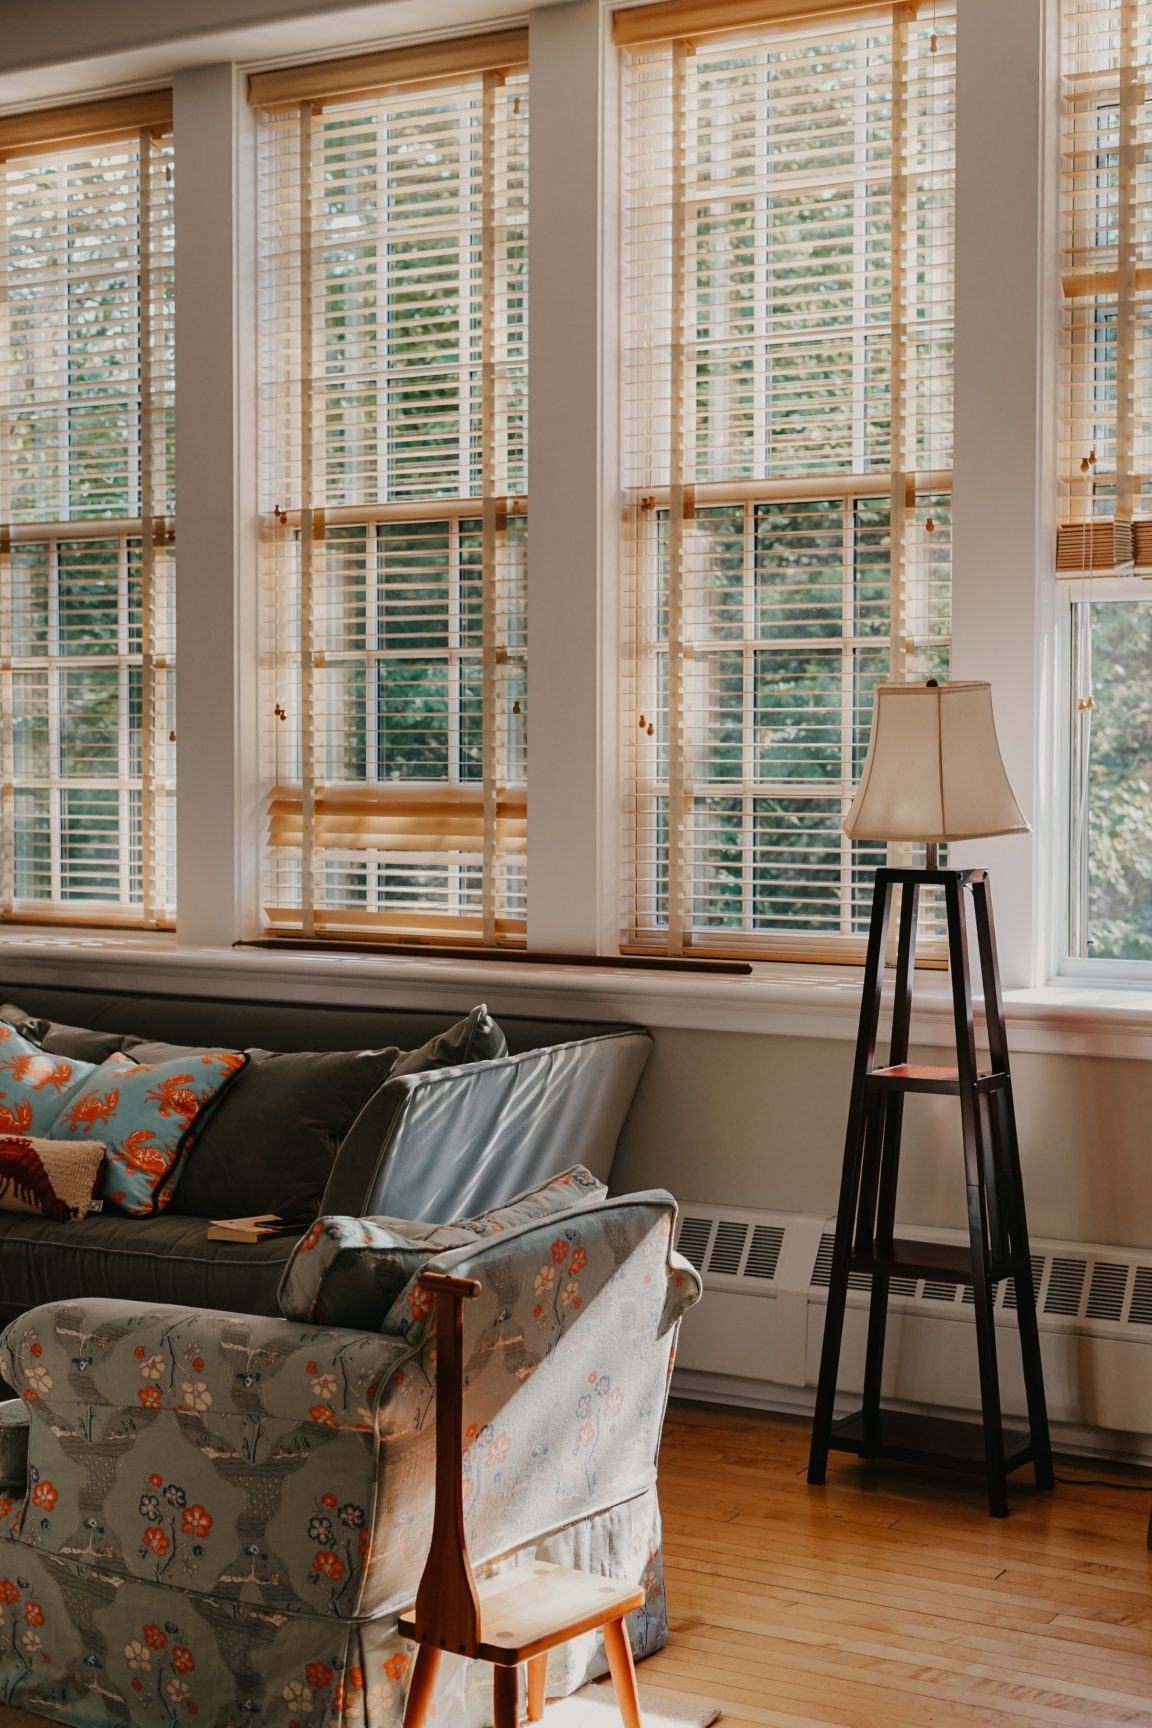 black and white floor lamp near white and brown wooden window frames